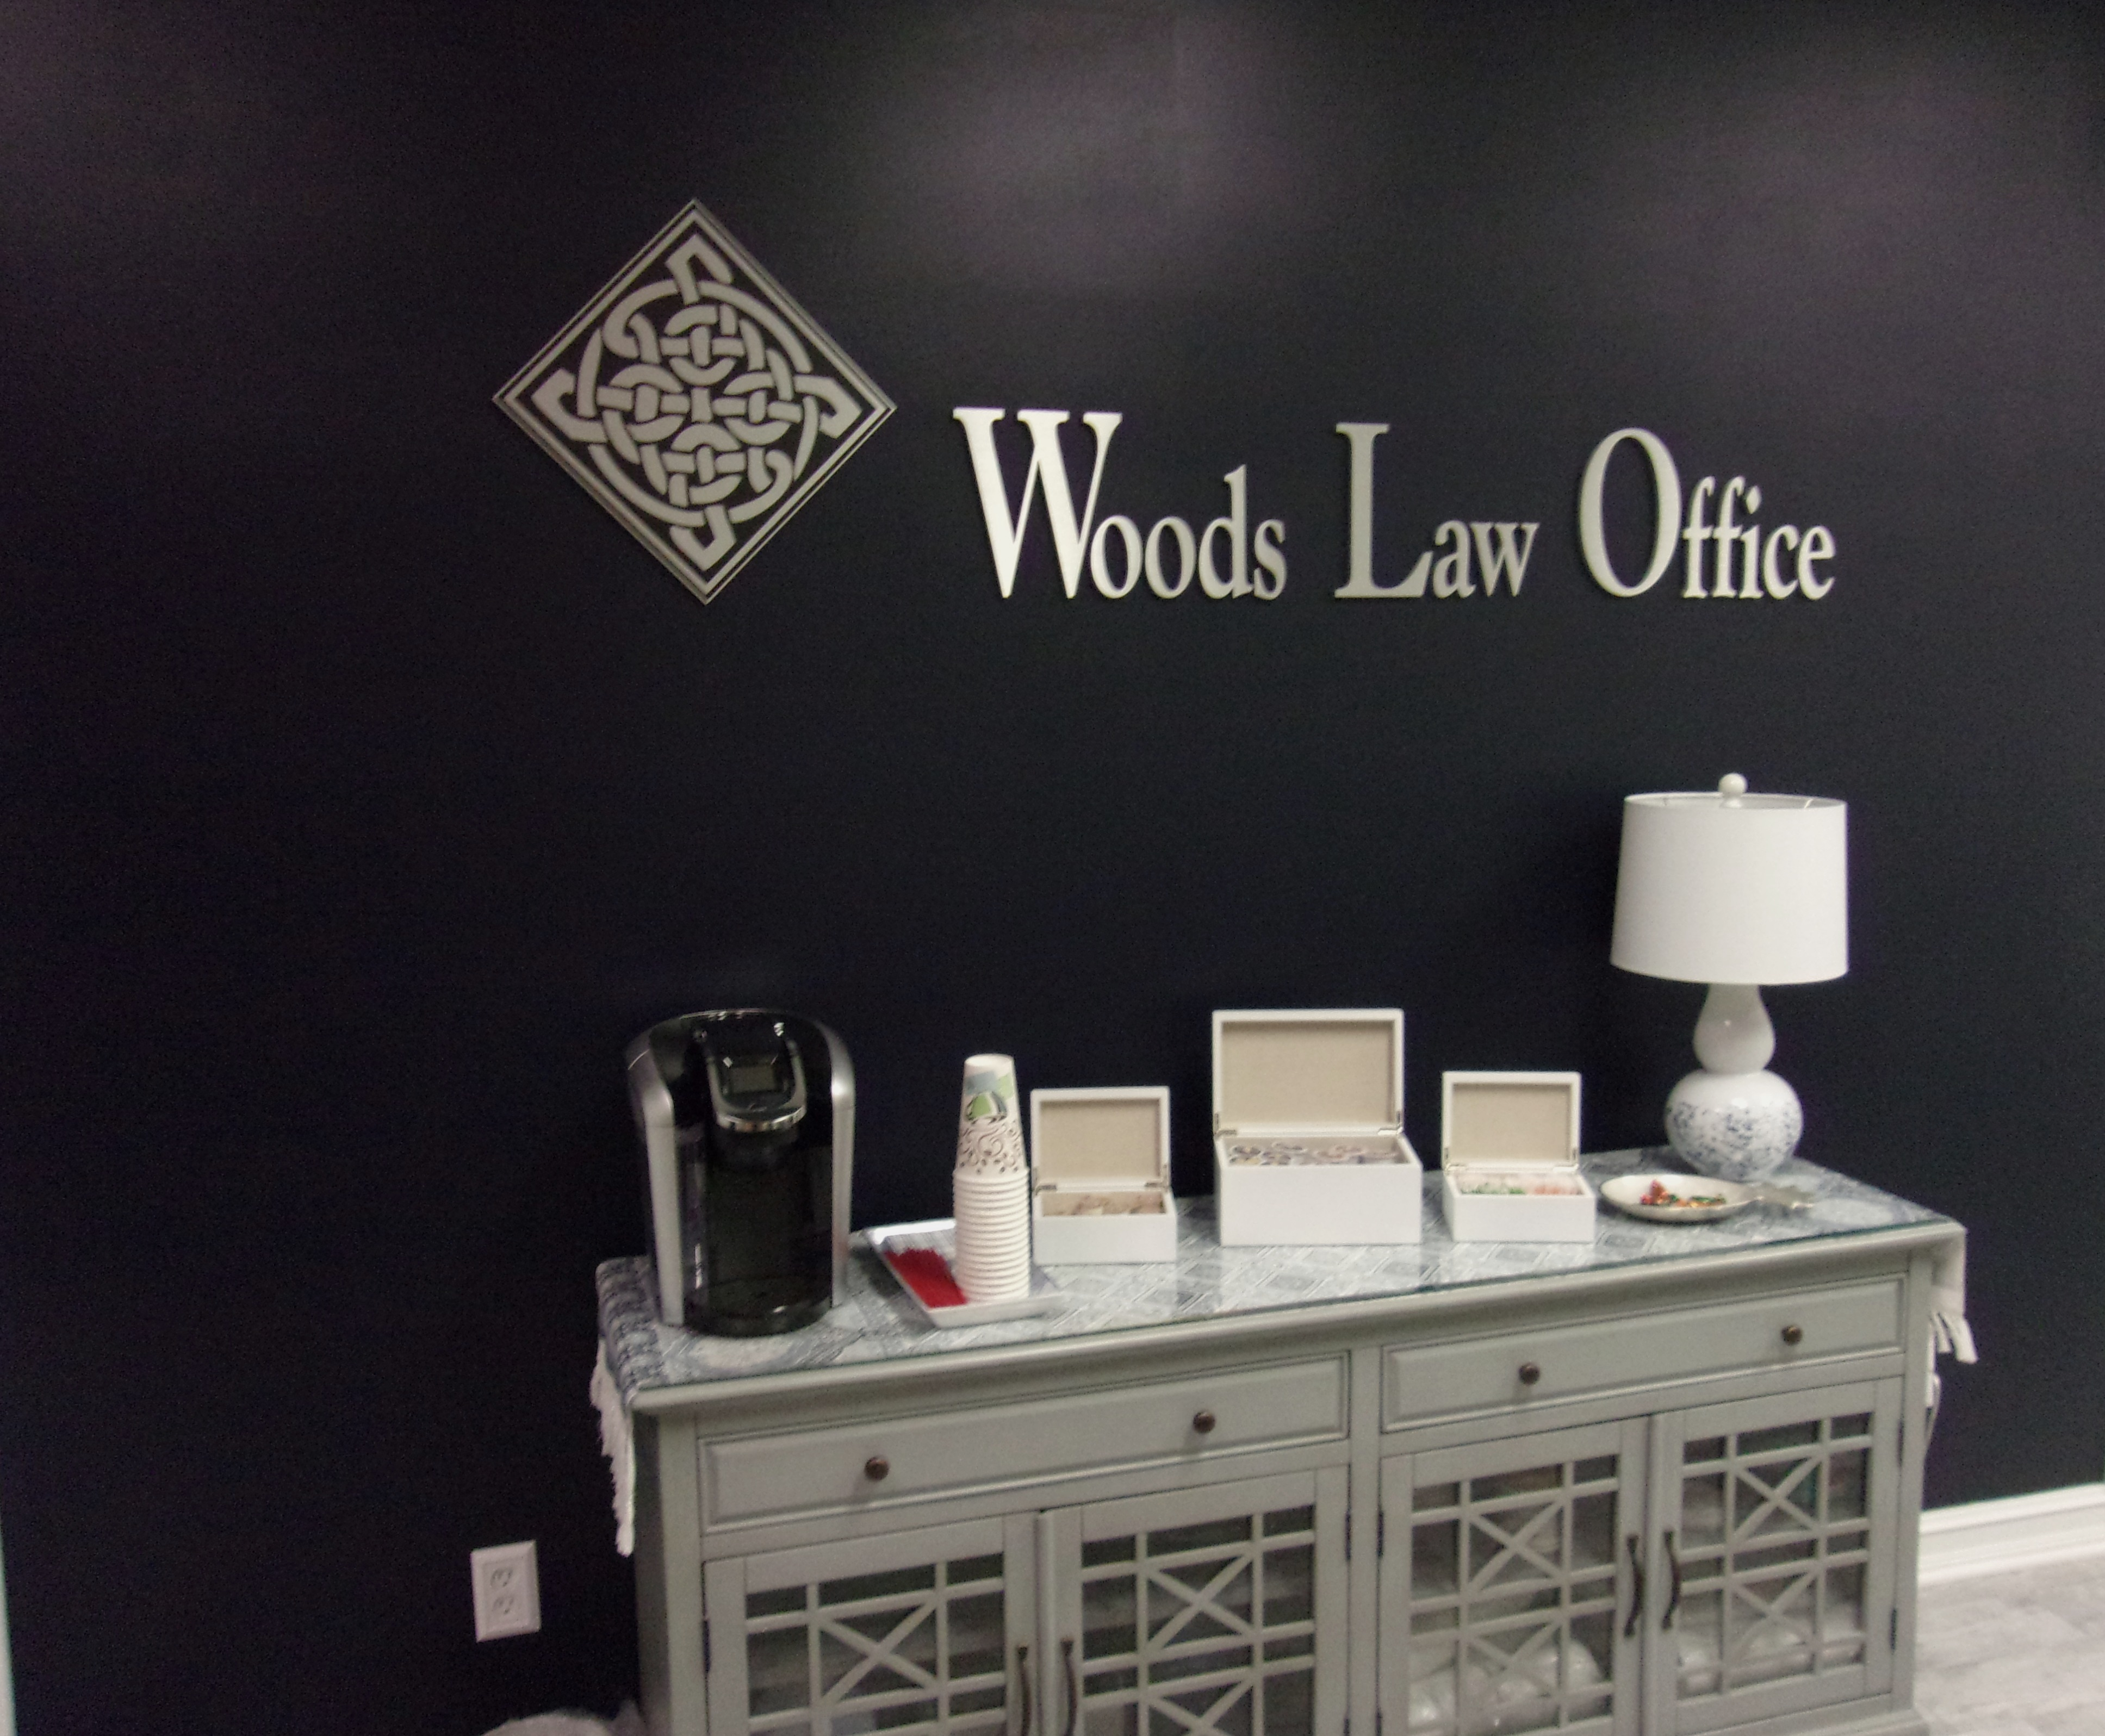 Woods Law Office